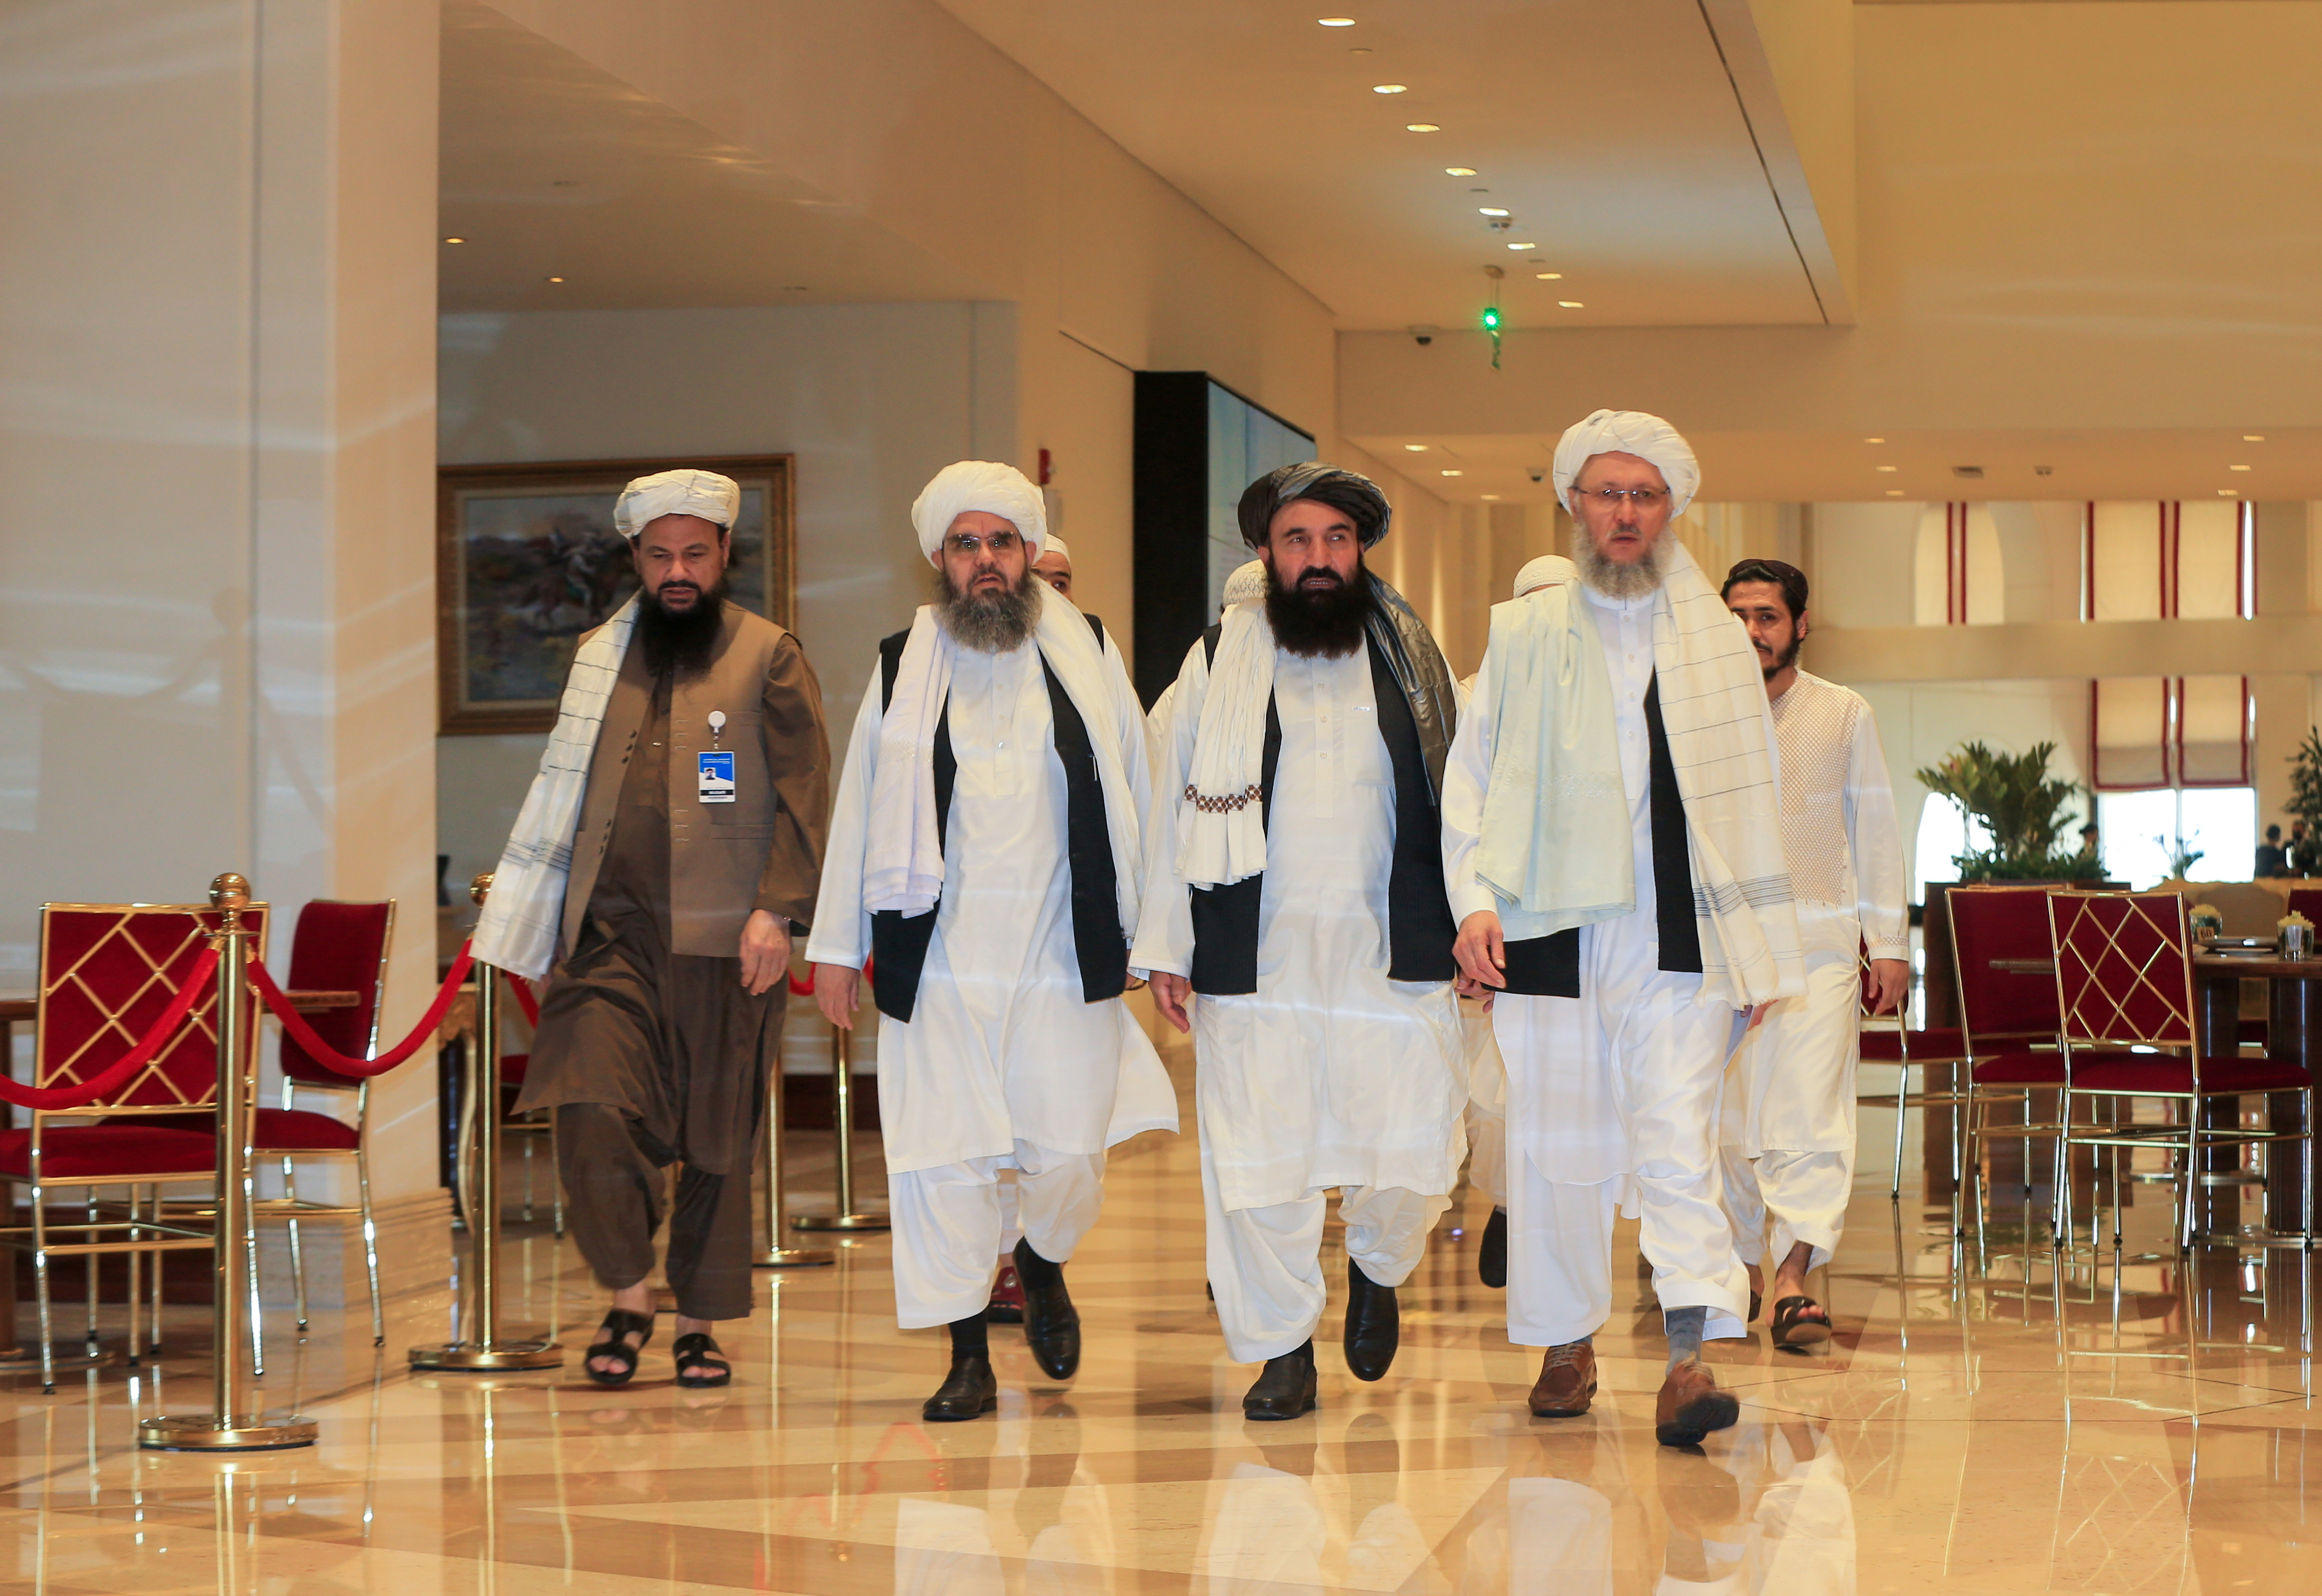 Abdul Salam Hanafi, member of the Taliban negotiating team and the Taliban delegation, arrive for Afghan peace talks in Doha, Qatar, August 12, 2021. REUTERS/Hussein Sayed